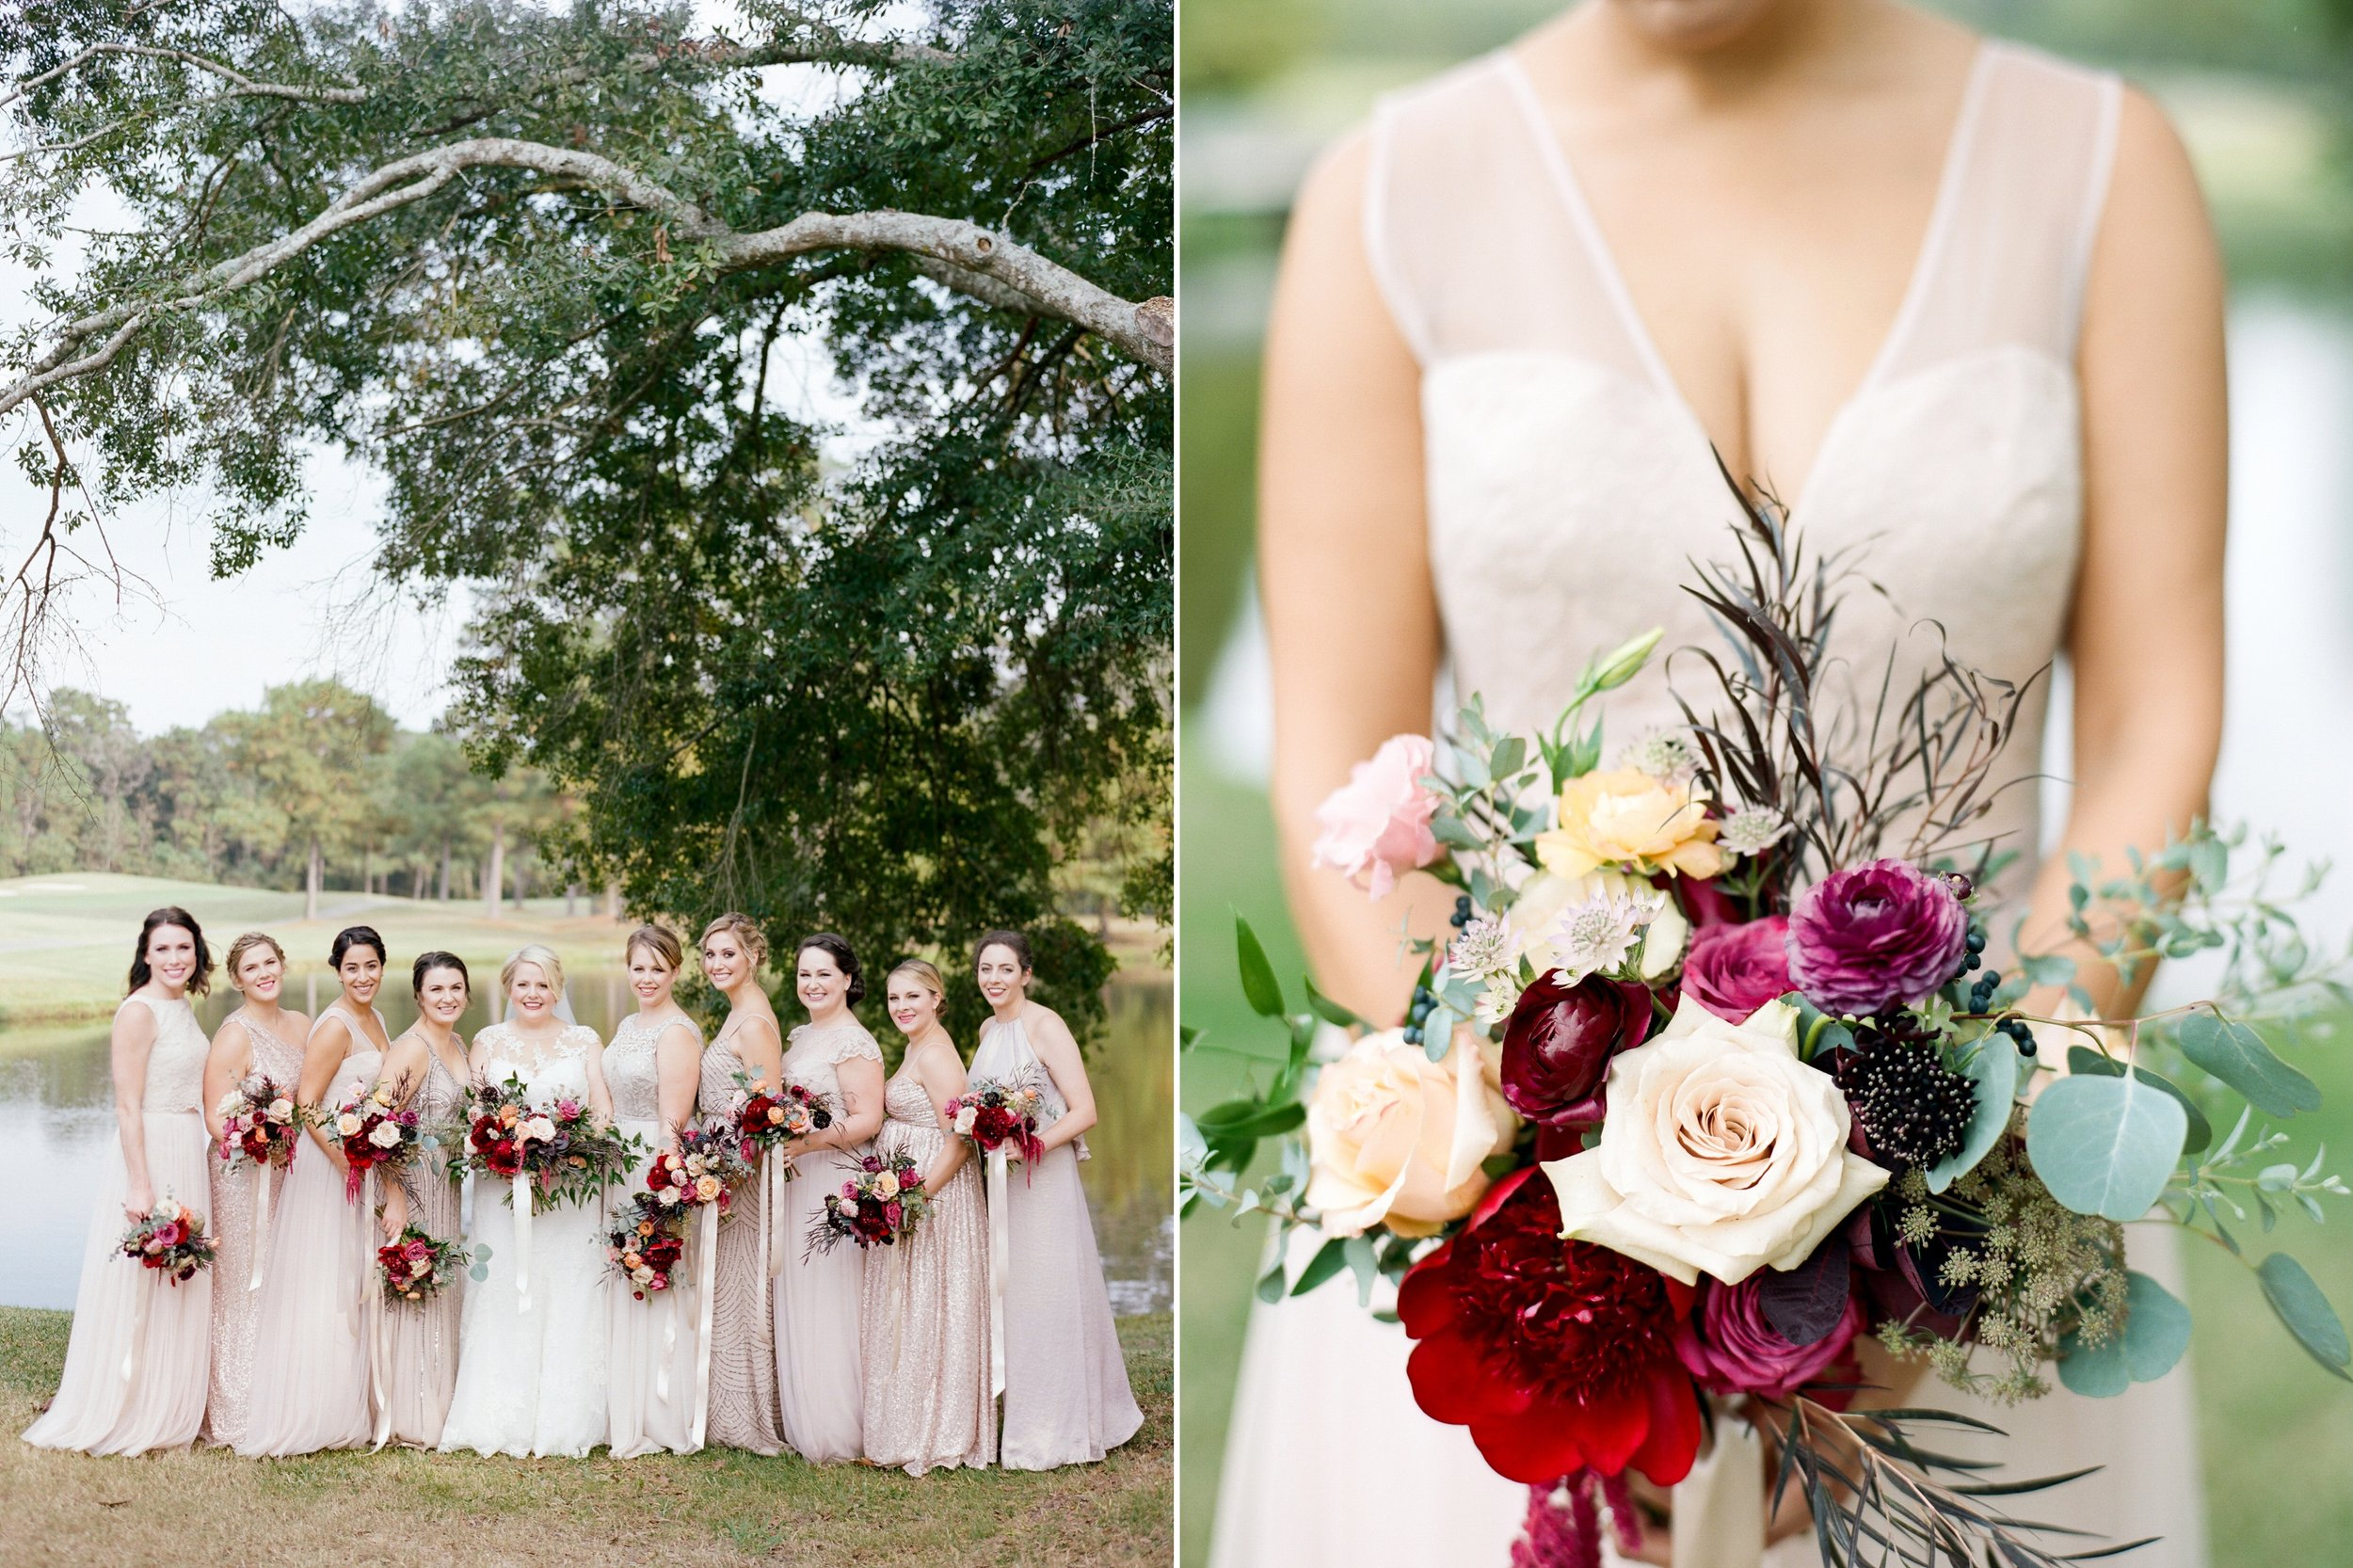 The-Woodlands-Country-Club-Palmer-Course-Wedding-Venue-Houston-Texas-Wedding-Photographer-Photography-Film-2.jpg